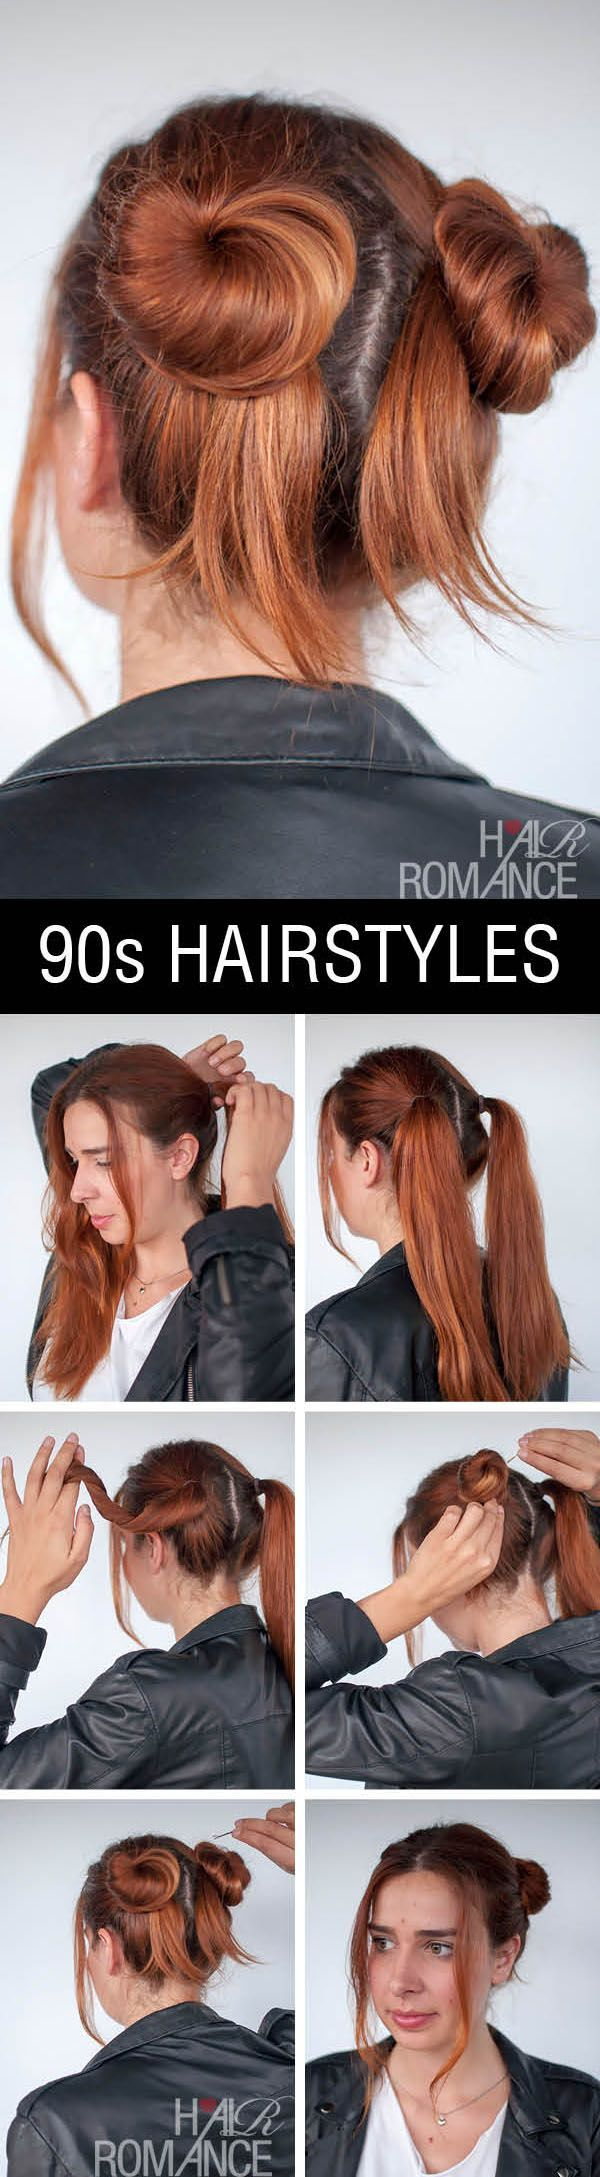 90s inspired #normcore hair tutorial – double buns | Hair Romance